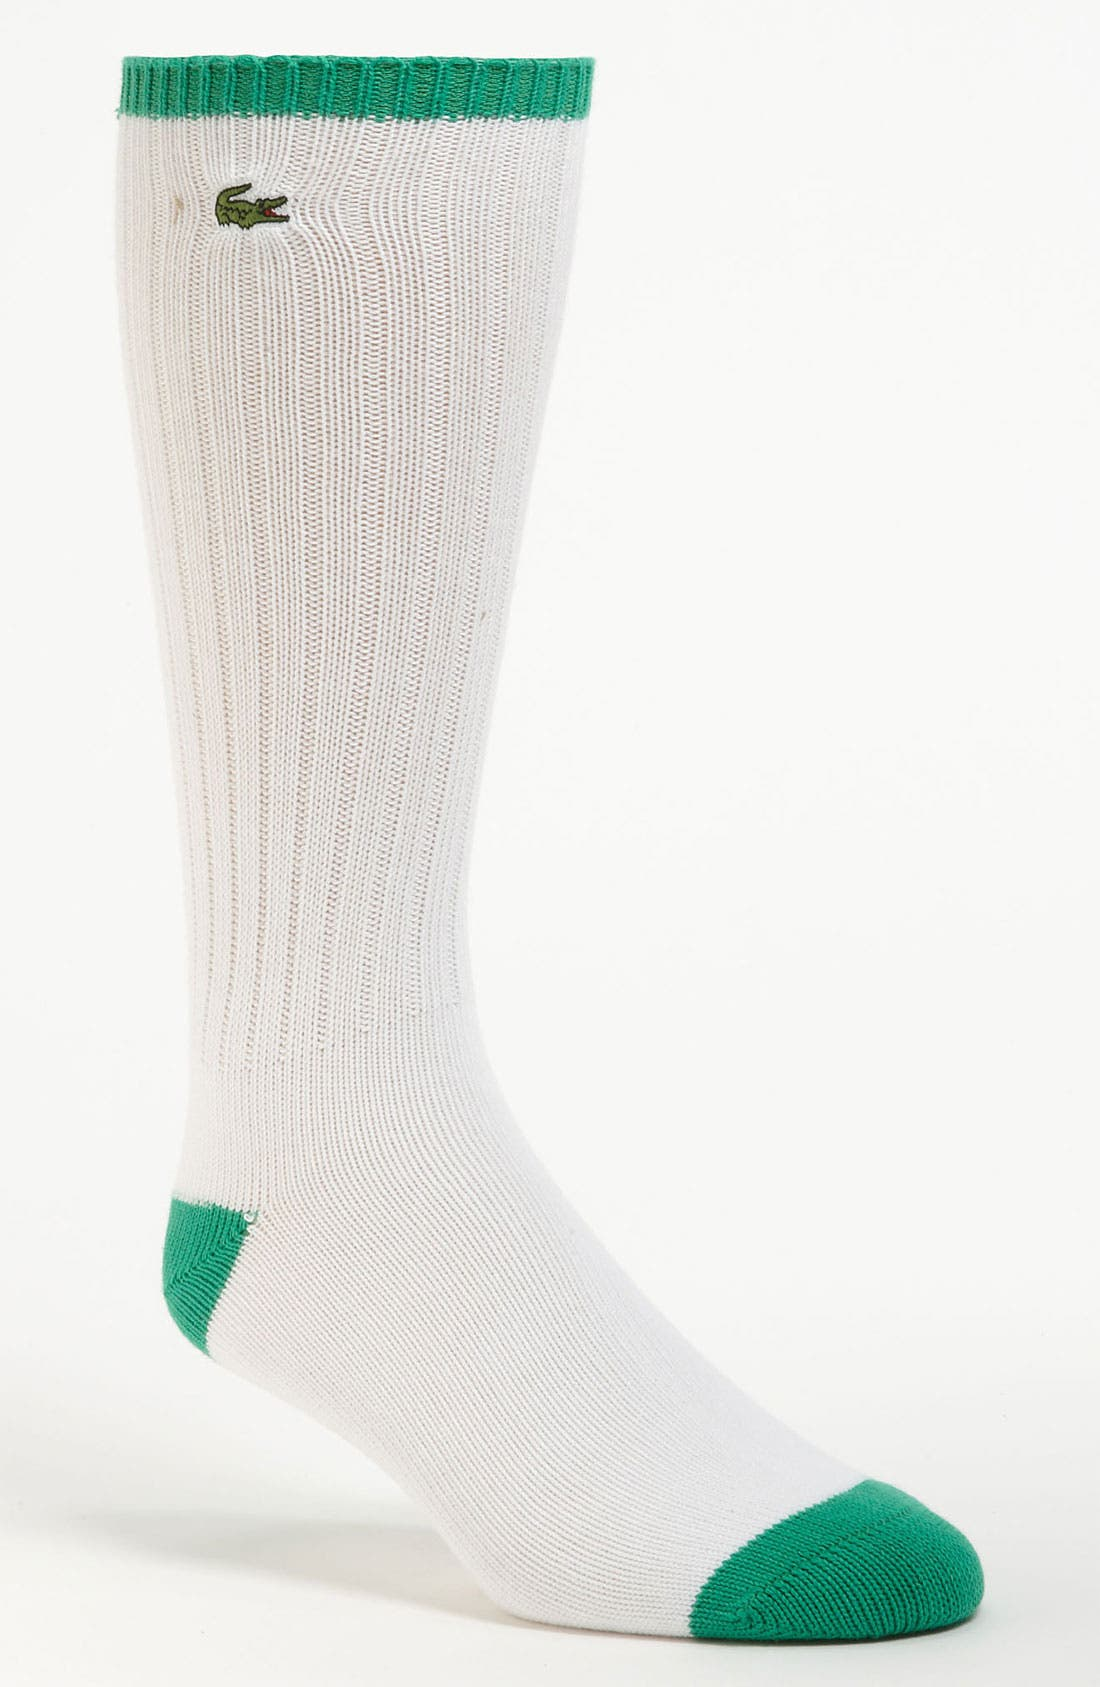 Main Image - Lacoste 'Classic Tip' Socks